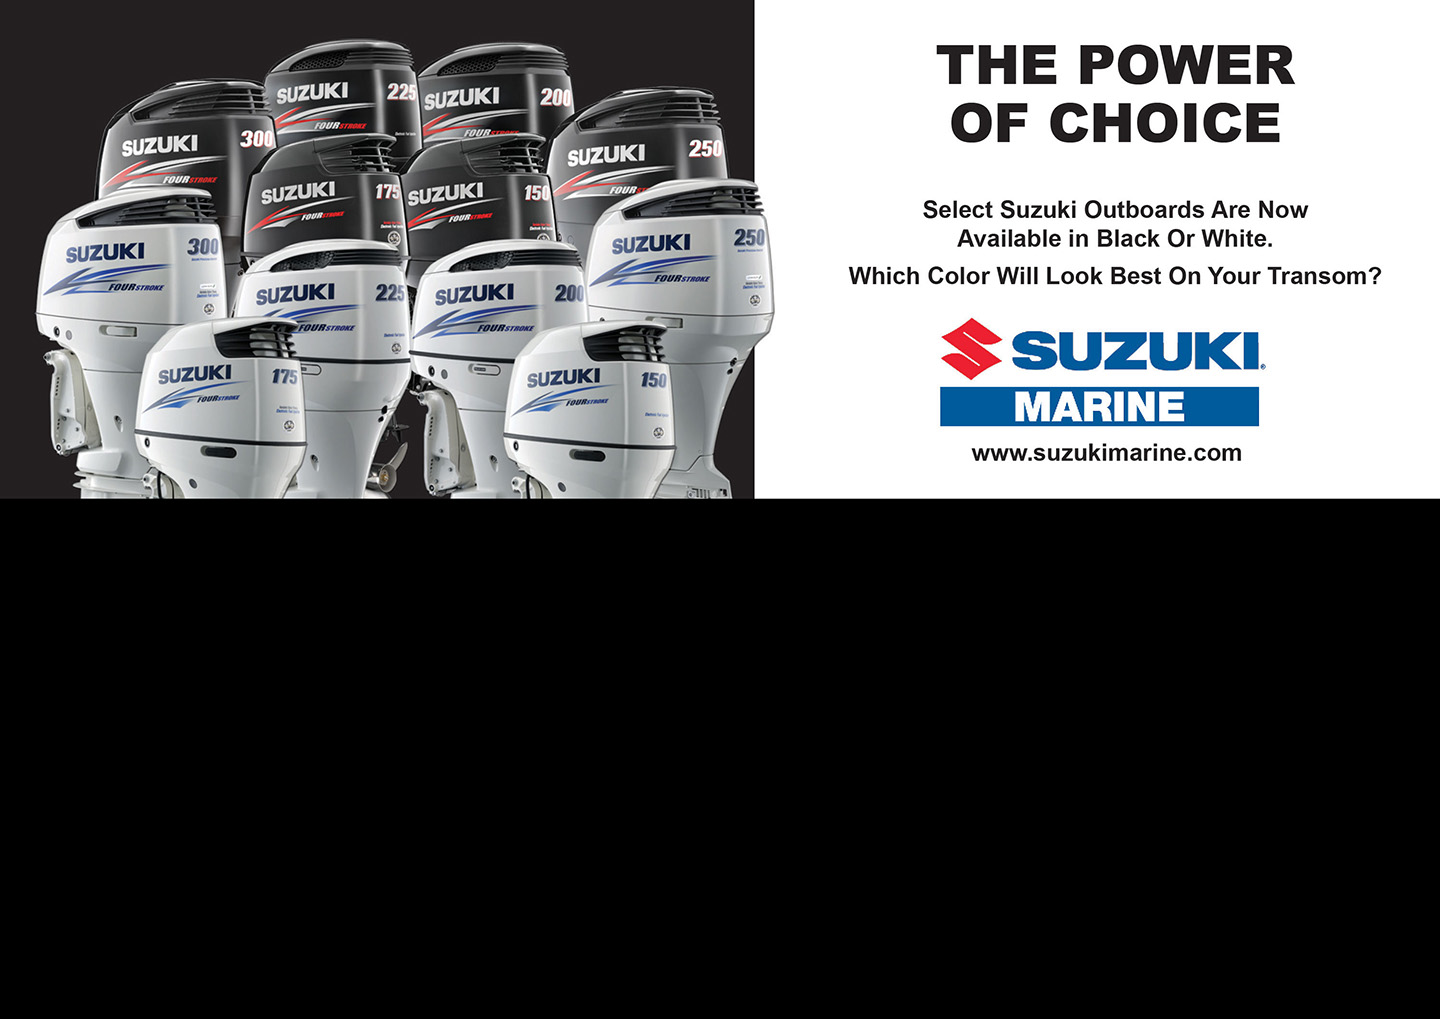 Suzuki Outboard Motor Power Of Choice